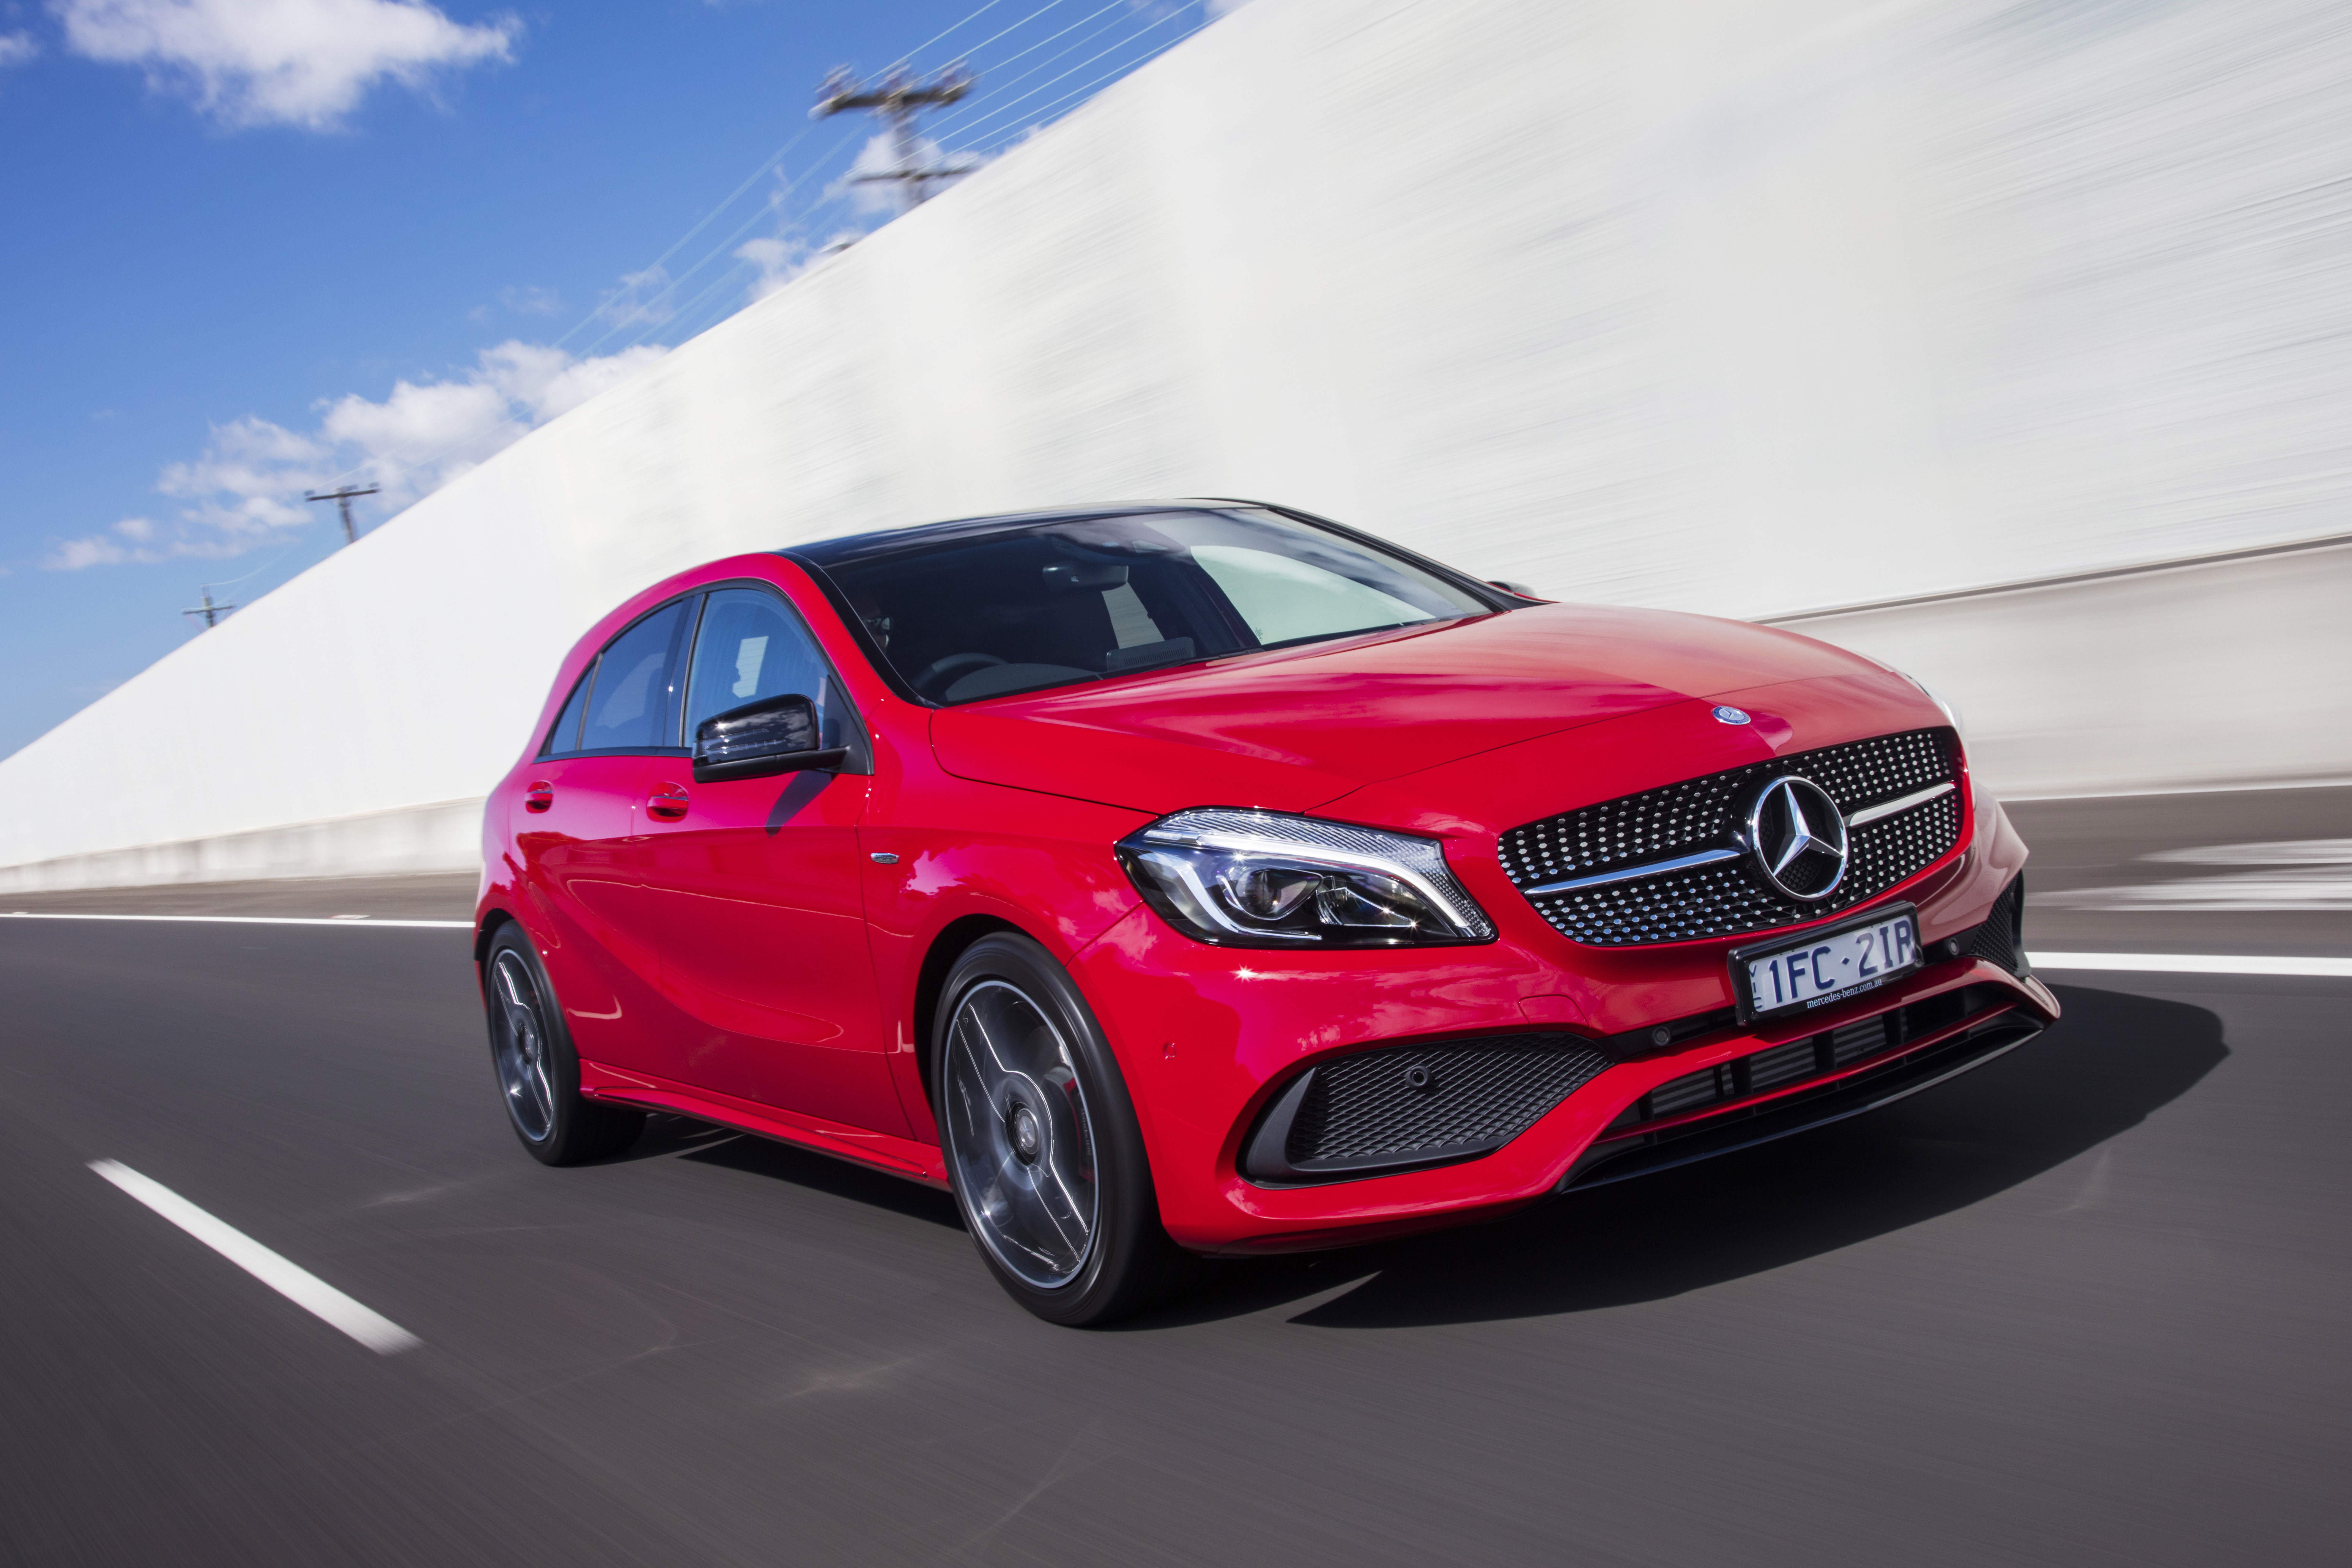 The new Mercedes-AMG A35 will sit above the A250 in the range.